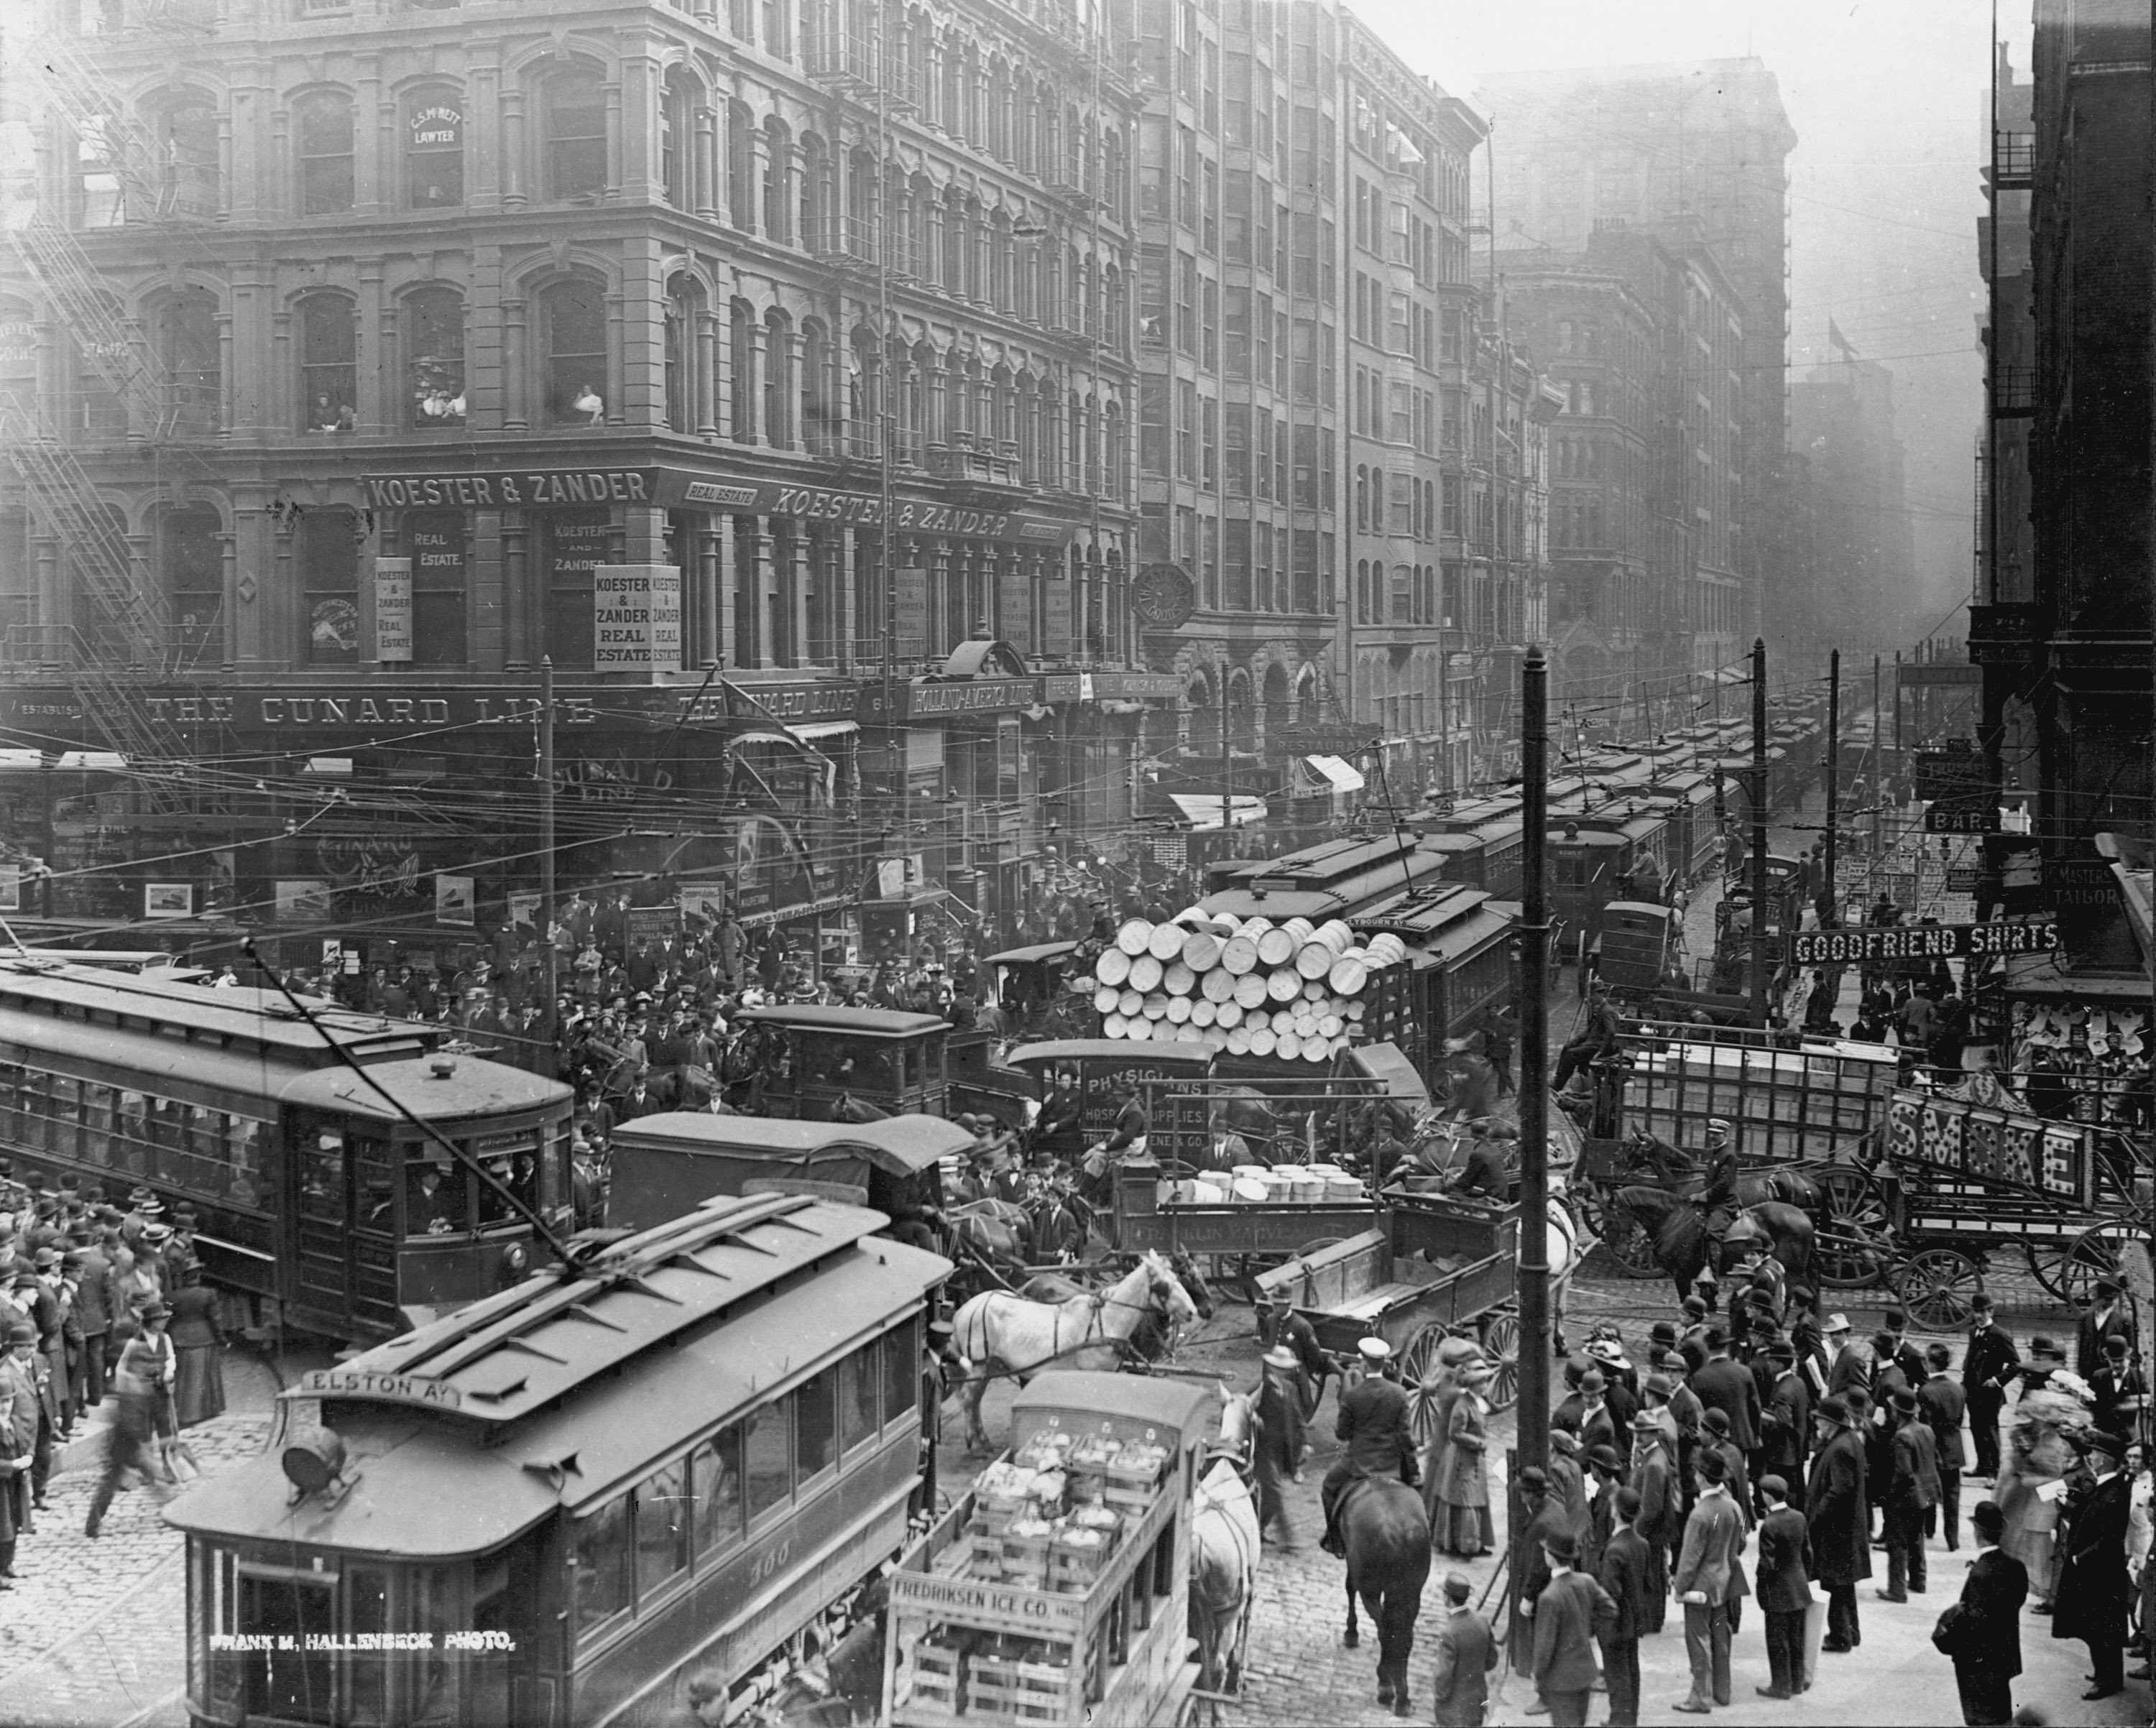 Traffic jam on Dearborn Street near Randolph Street; Chicago, Illinois; 1909. Several trolleys and horse-pulled carts on the street.